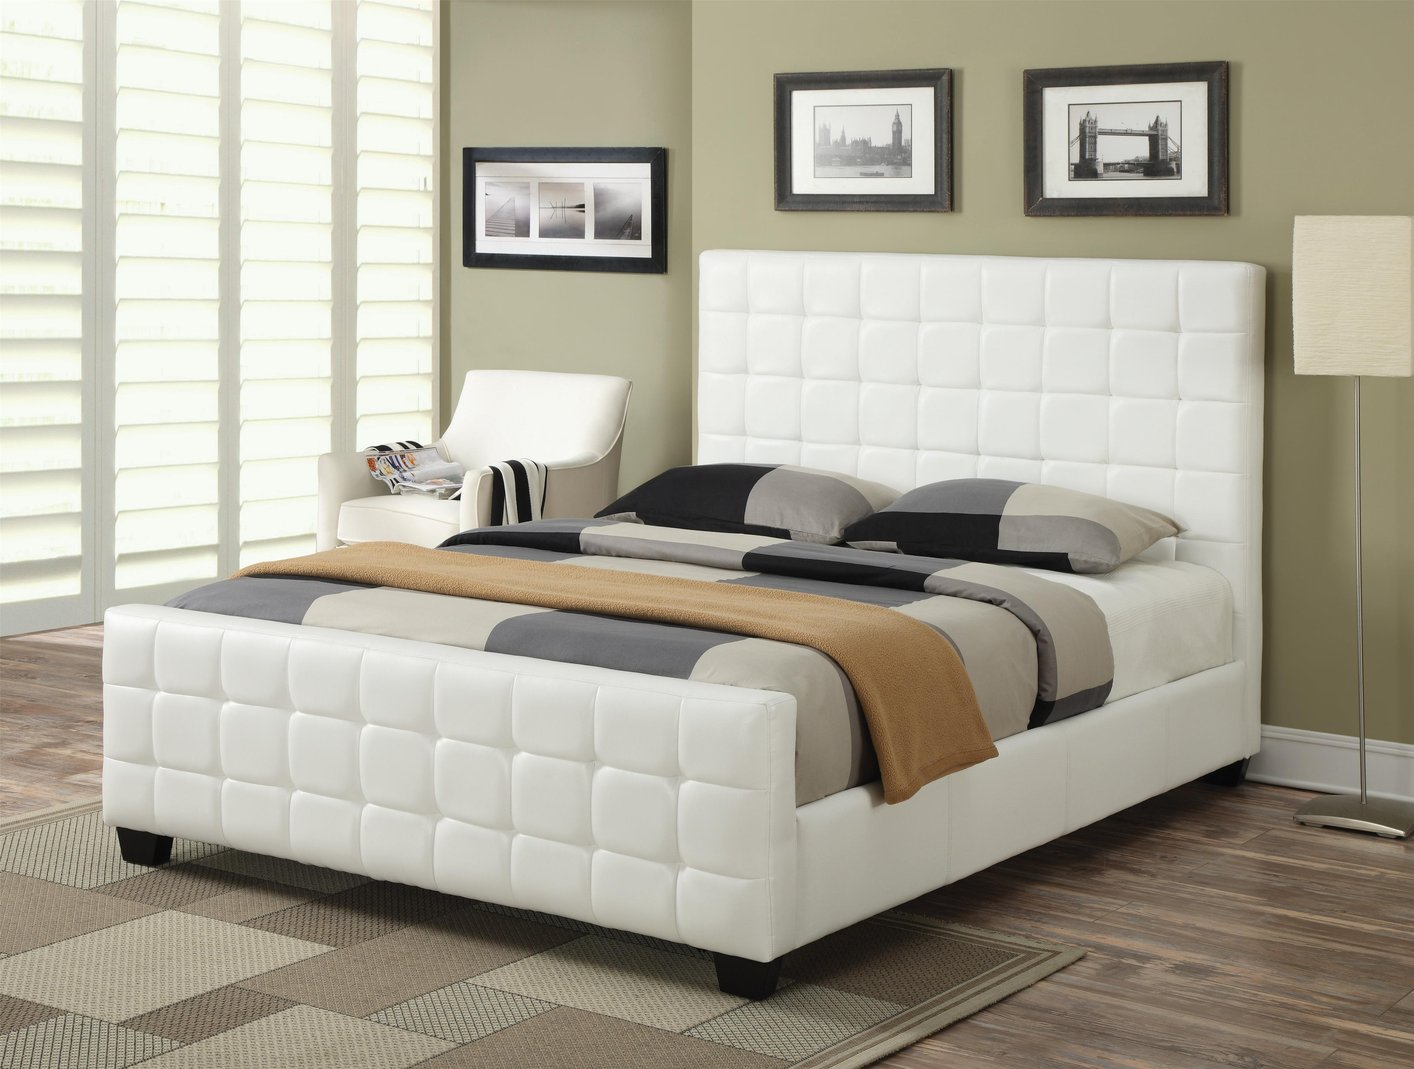 Coaster 300040kw white california king size leather bed for Cal king bed size